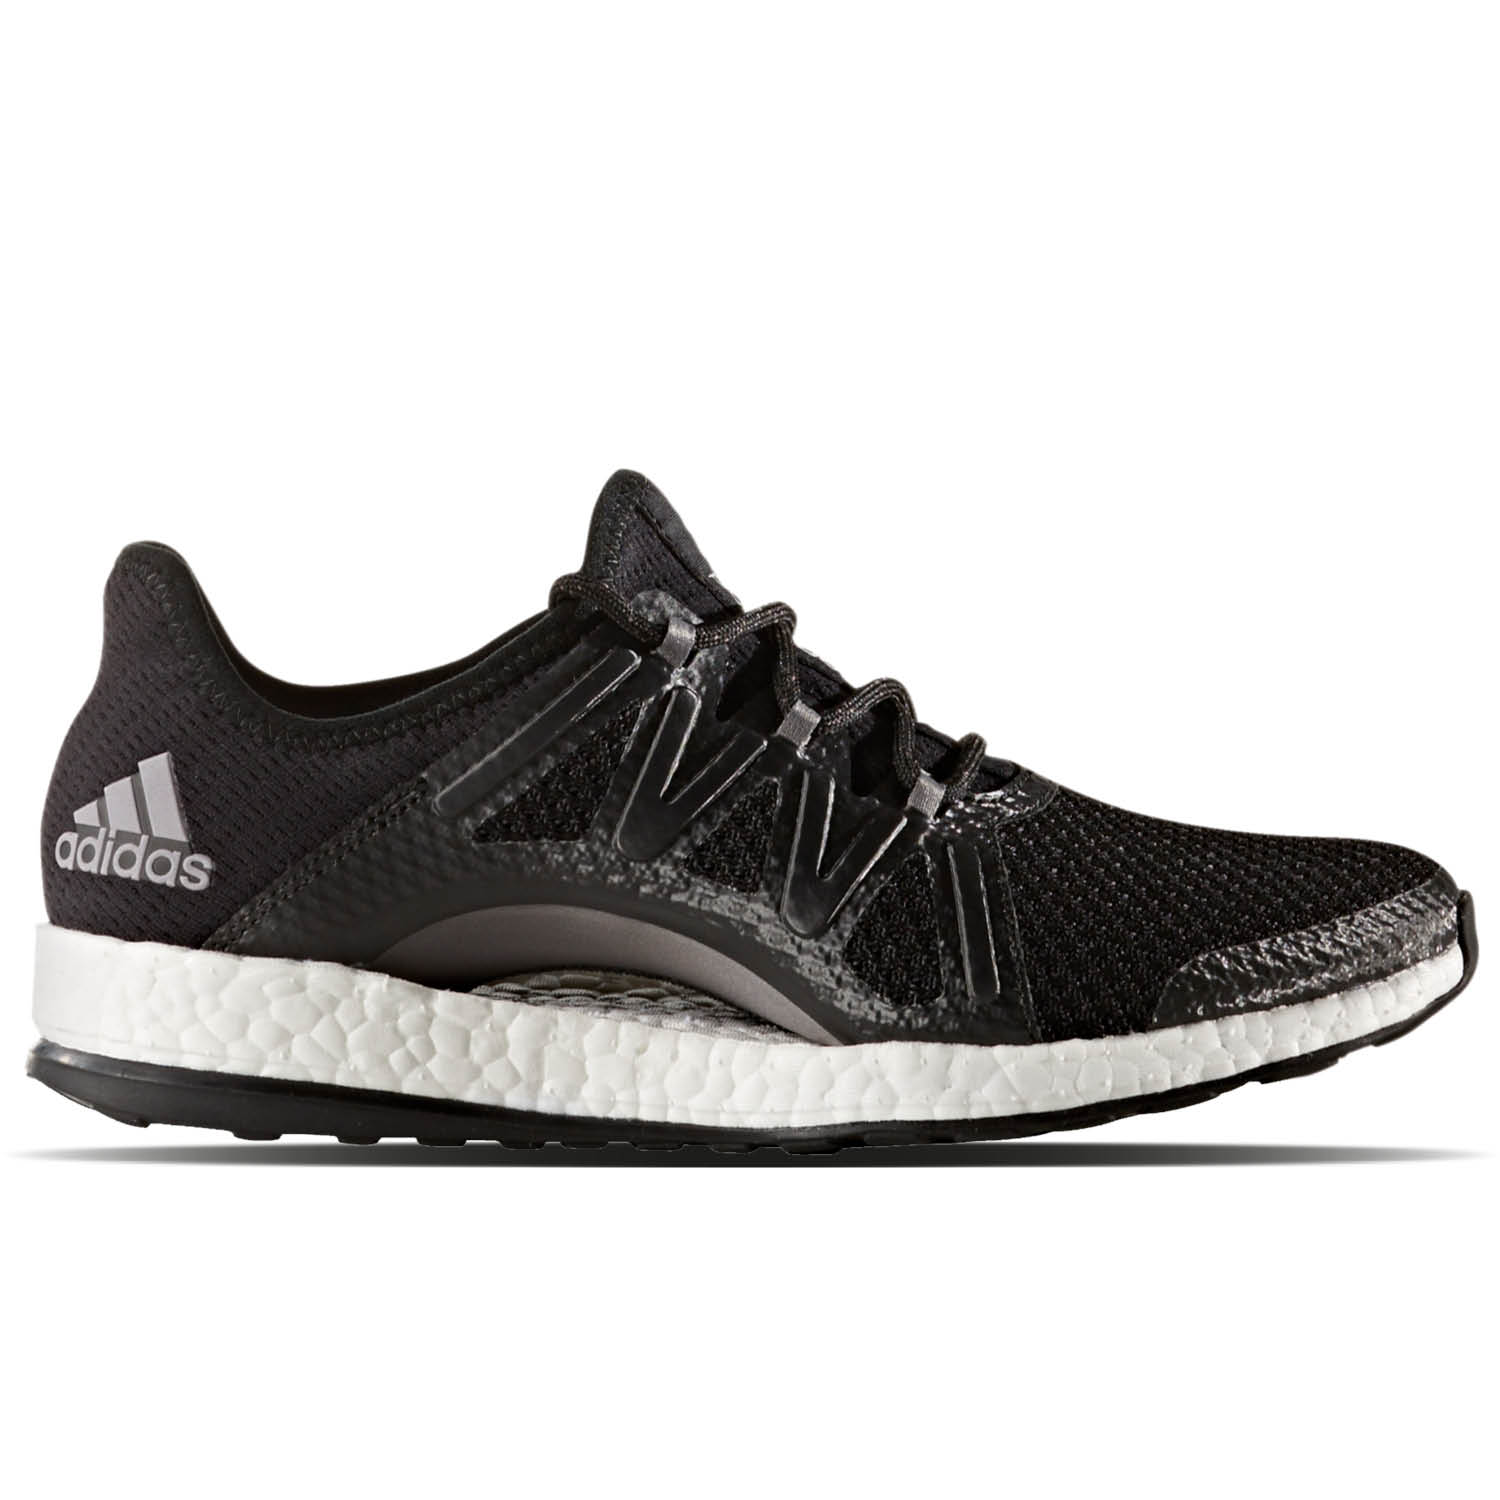 adidas pure boost buty